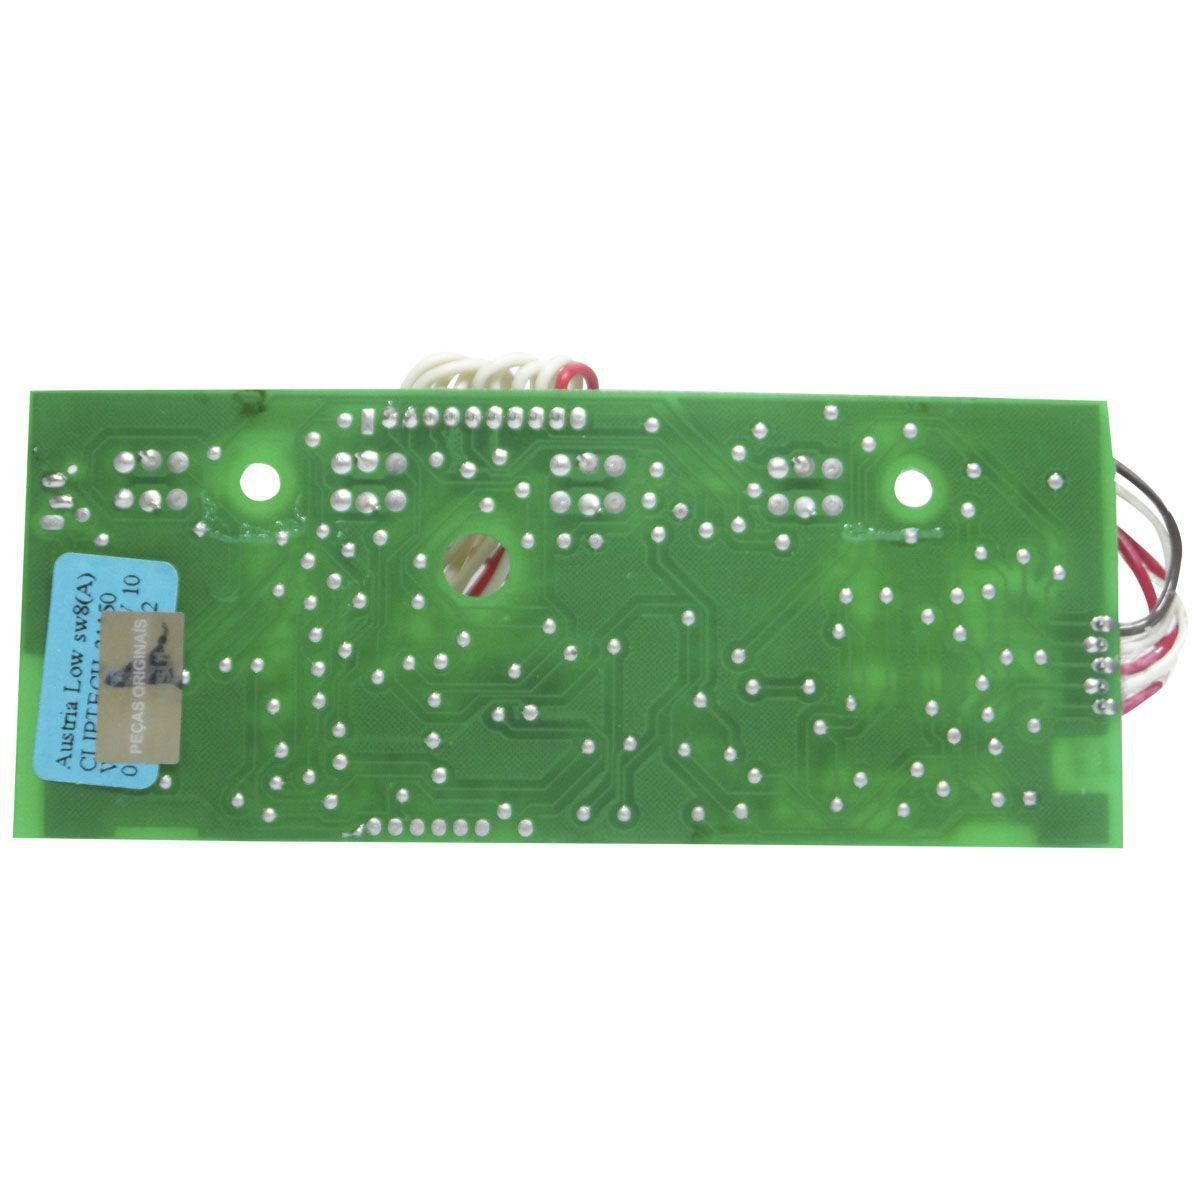 Placa Interface Lavadora Brastemp Original W10474203